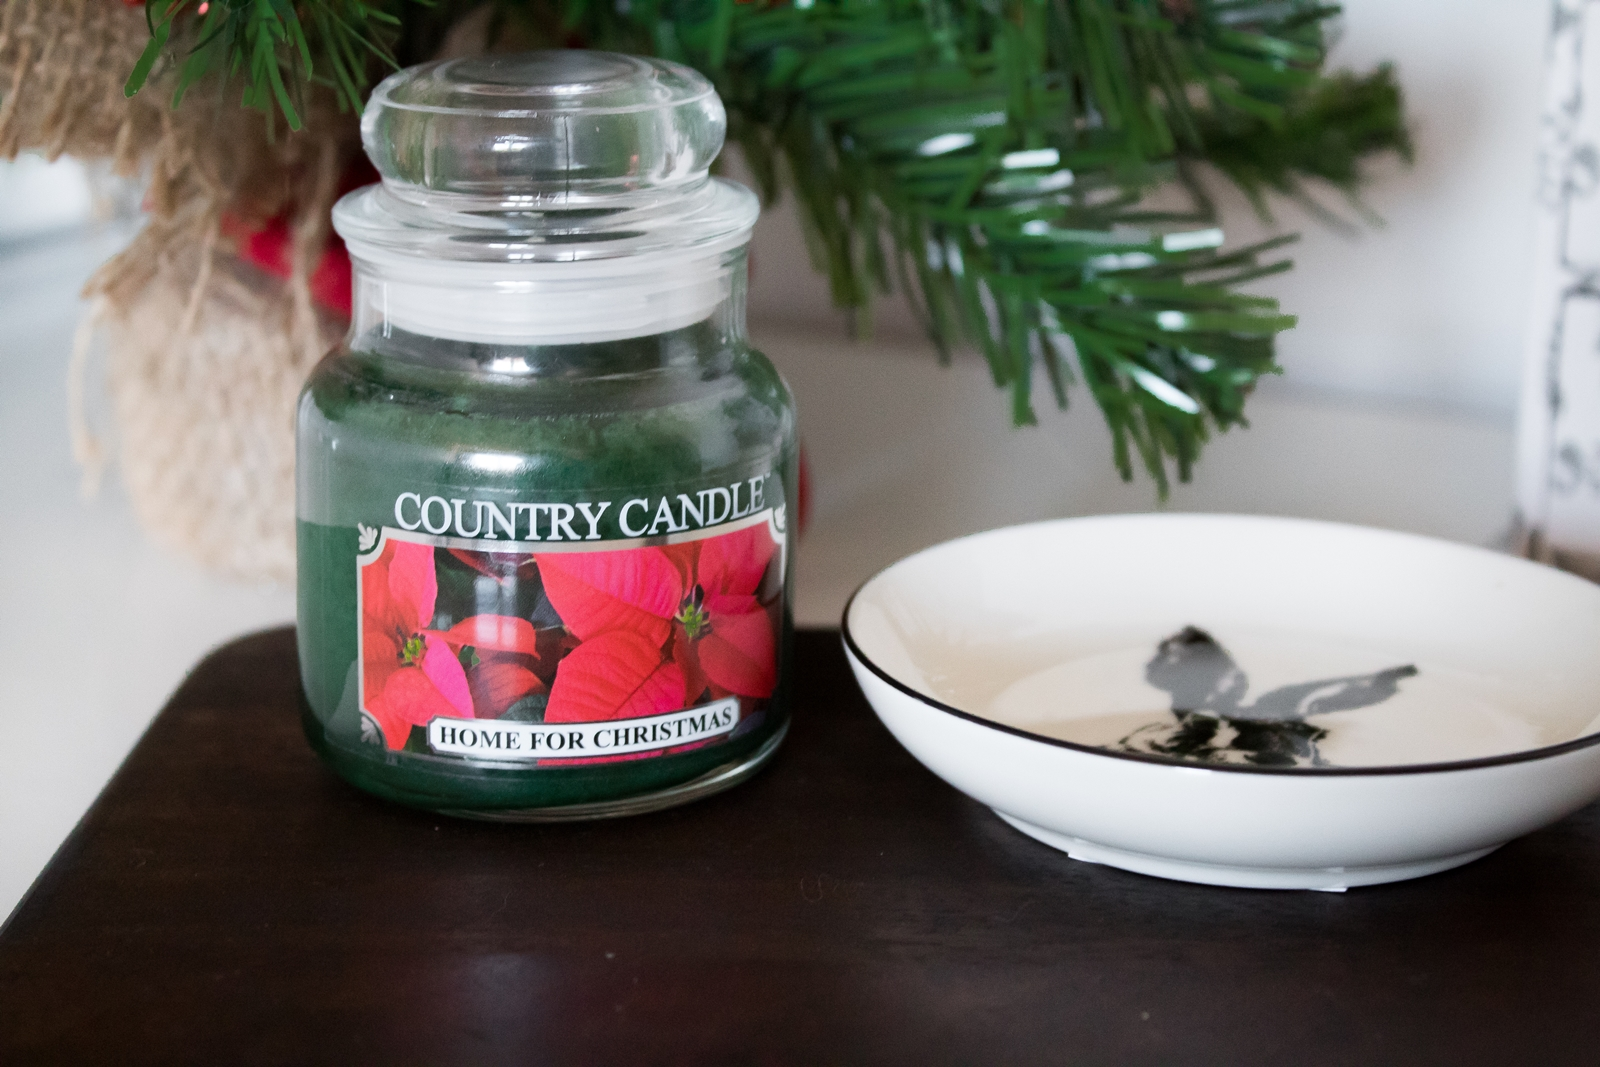 Zapach miesiąca | Country Candle, Home for Christmas